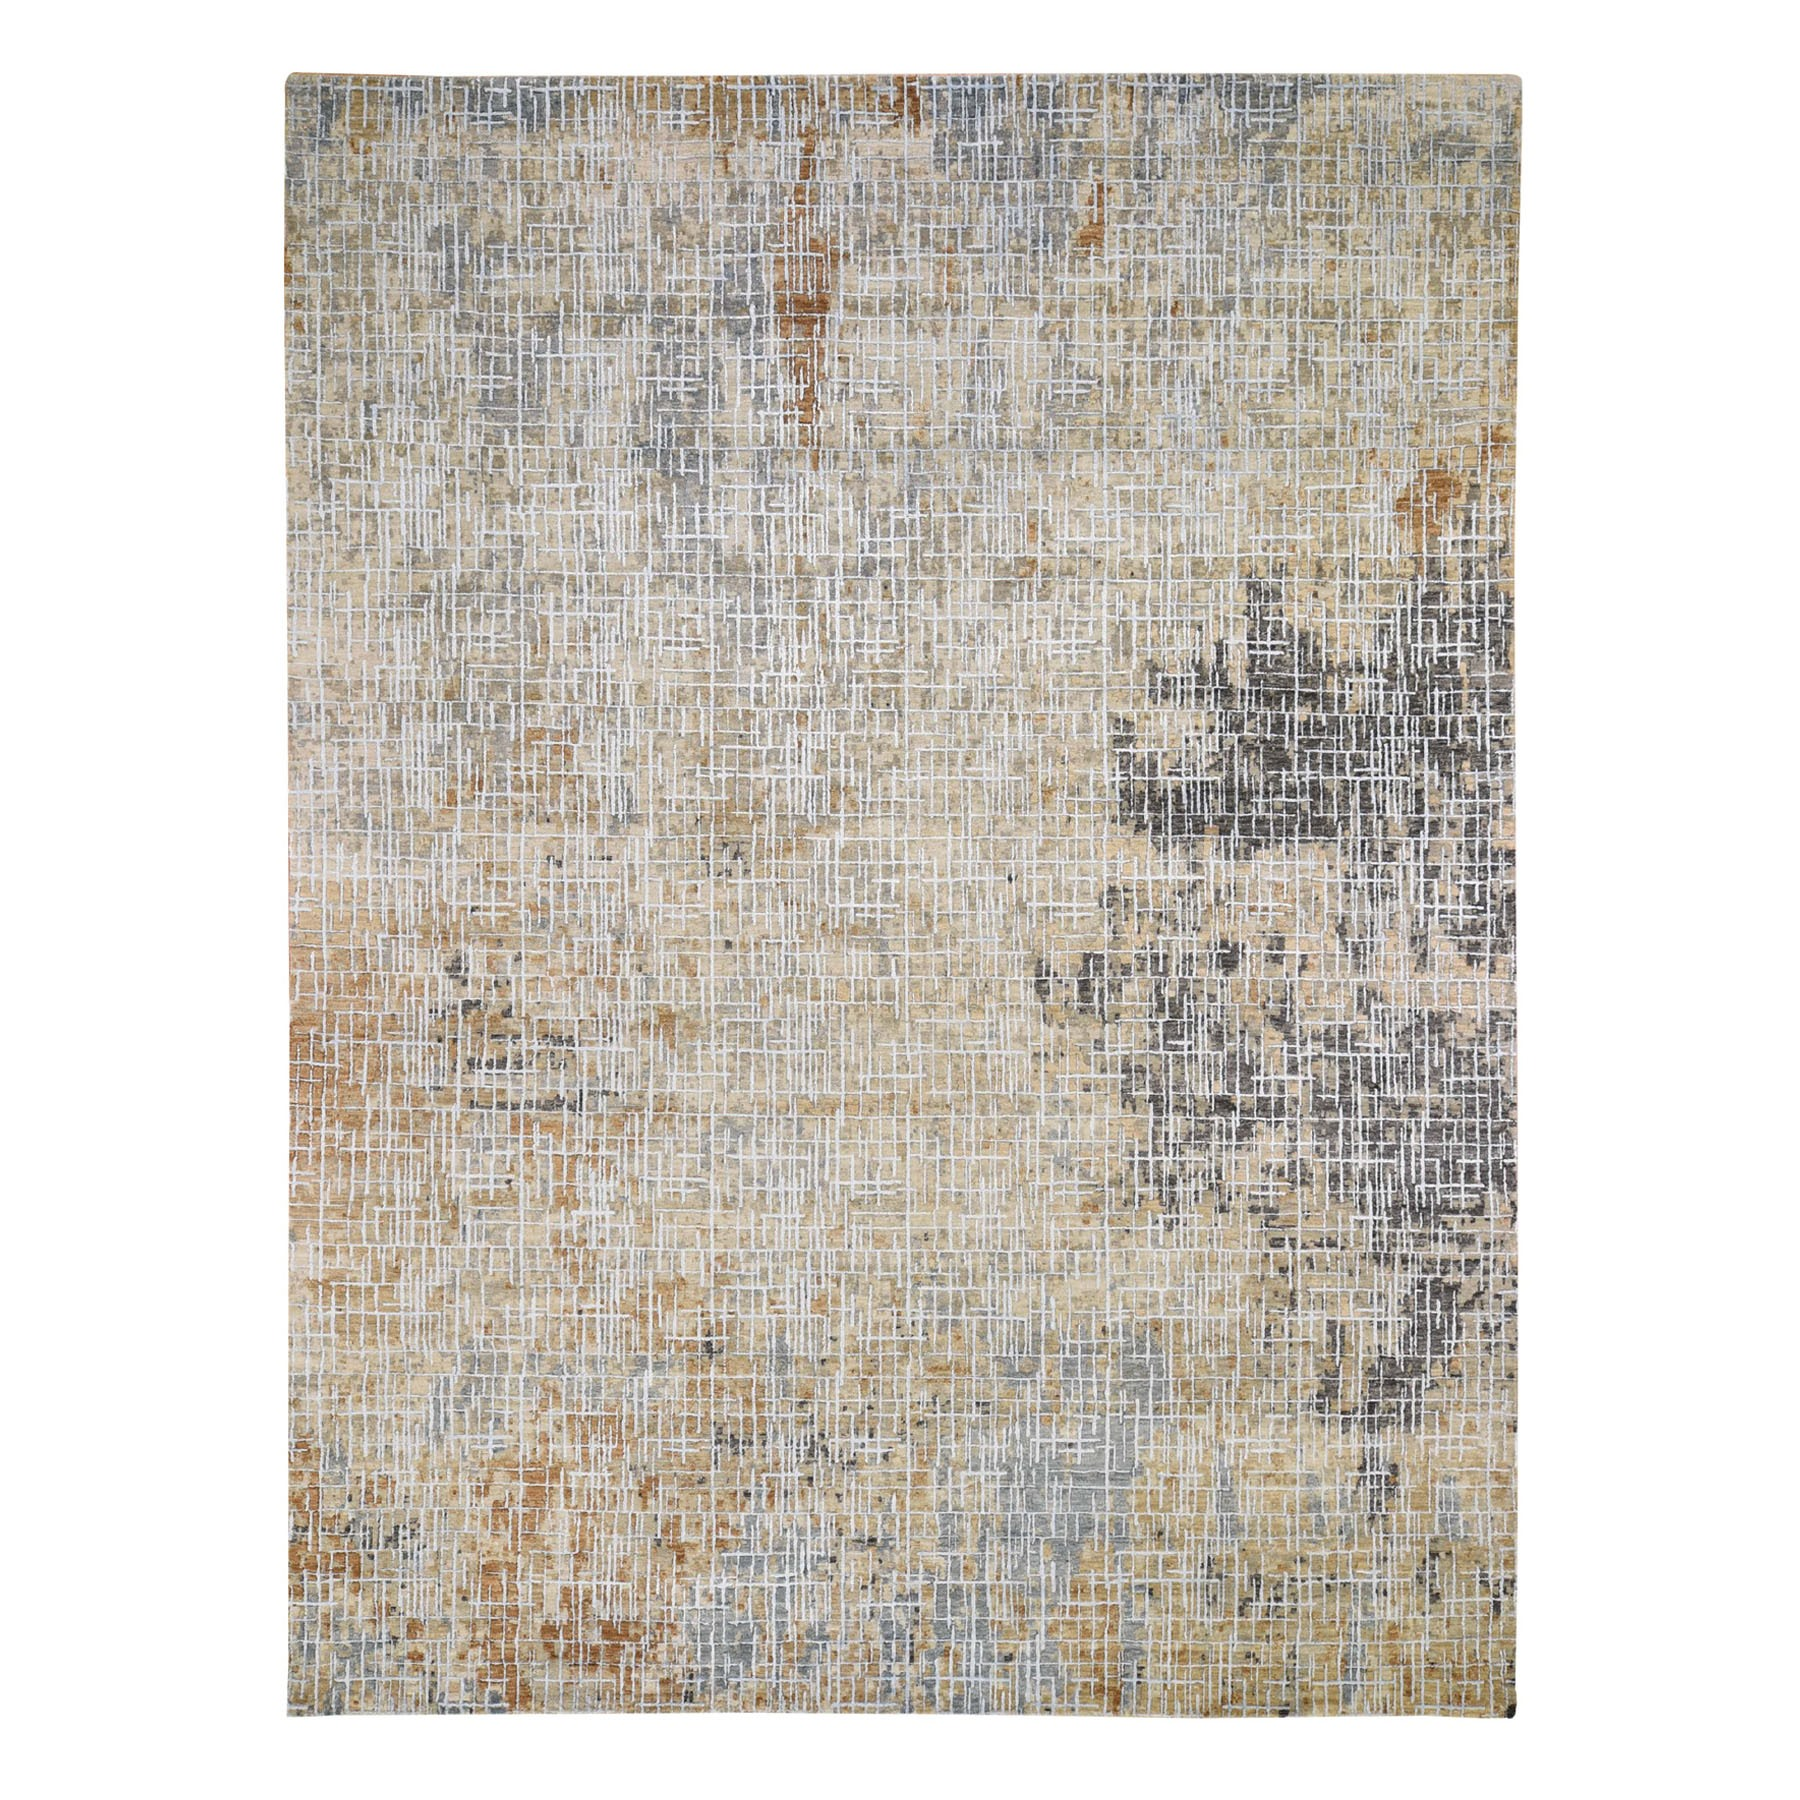 9'x12' Beige Abstract Design Wool and Silk Tight Knot Hand Knotted Oriental Rug